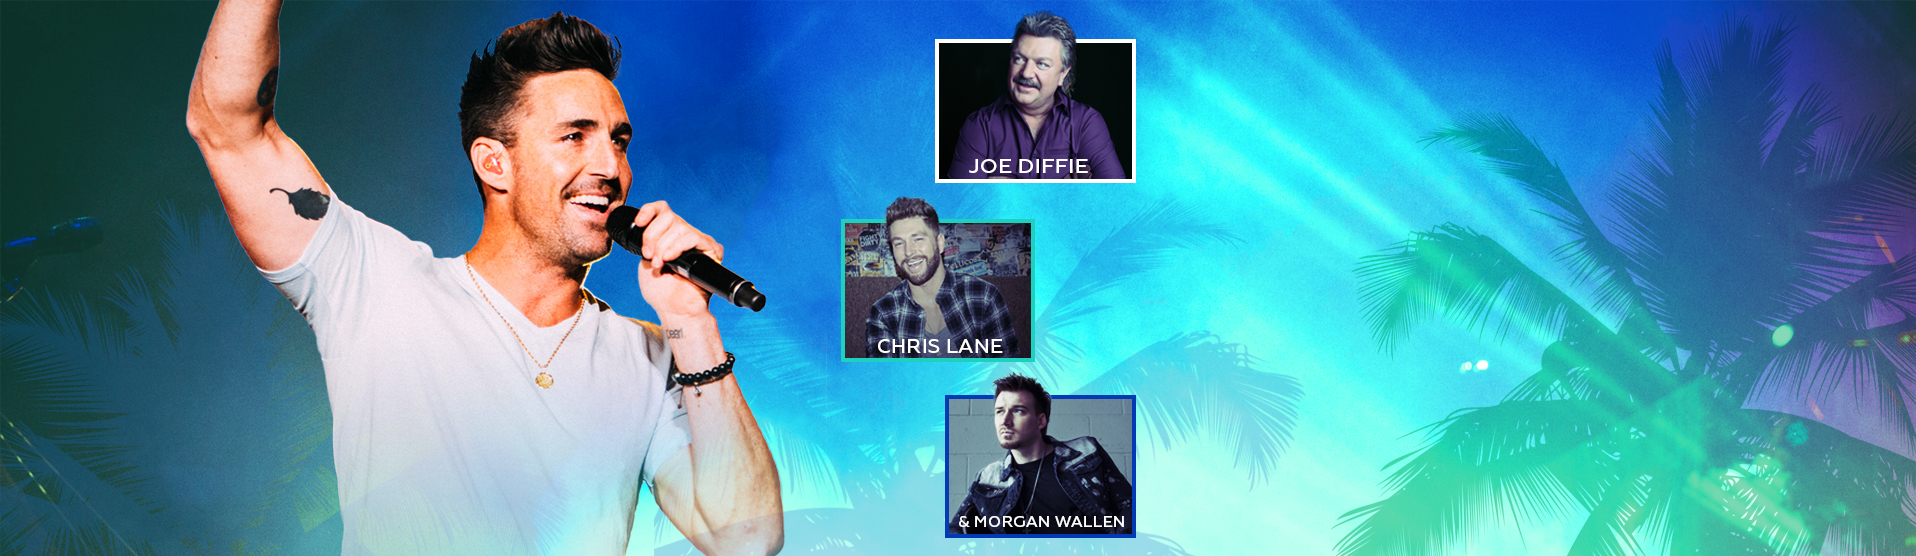 12th Annual Jake Owen Foundation Benefit Concert. Tickets on Sale Now.